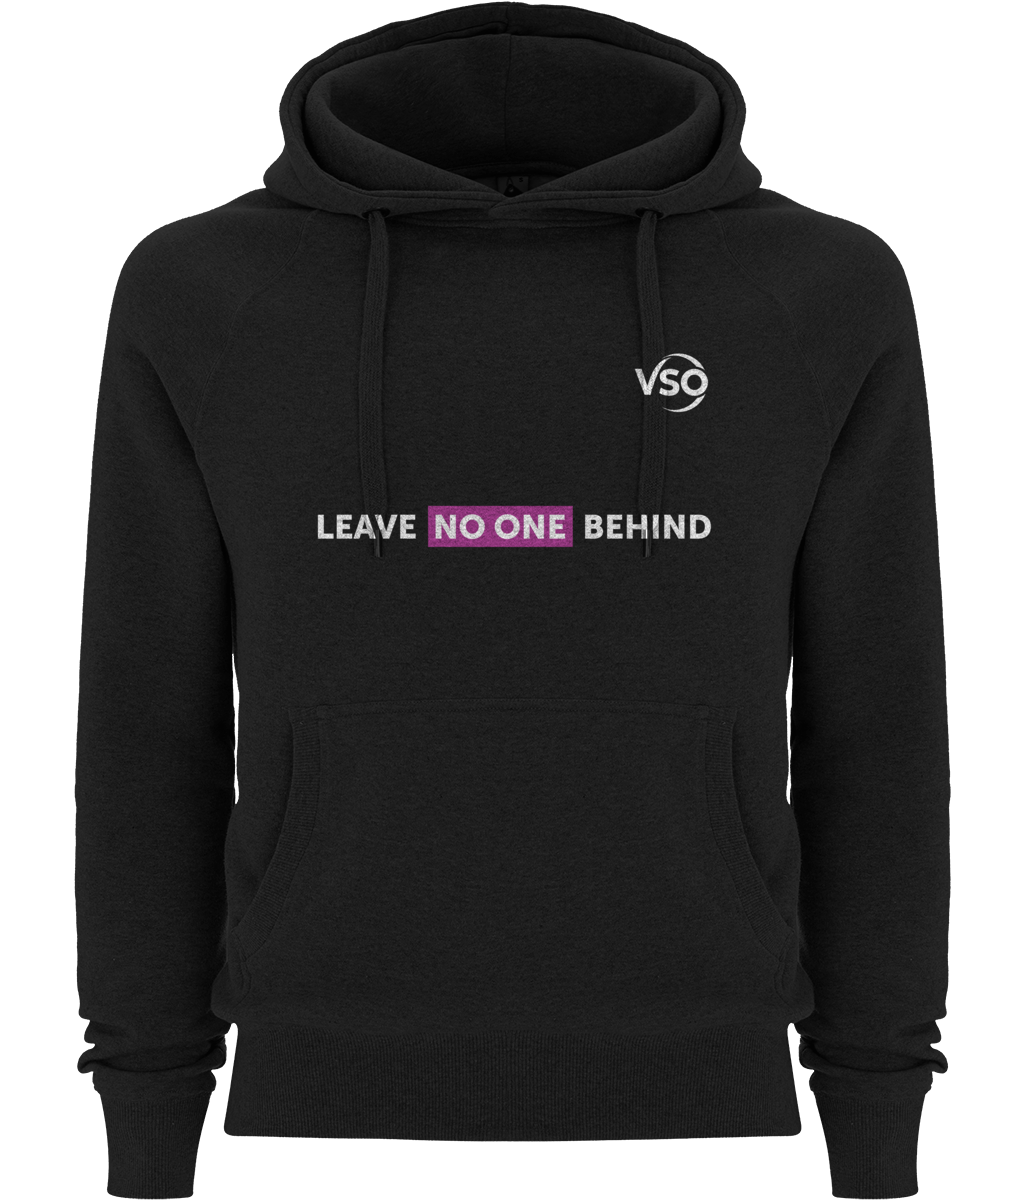 Leave No One Behind Unisex Pullover Hoodie (white logo)